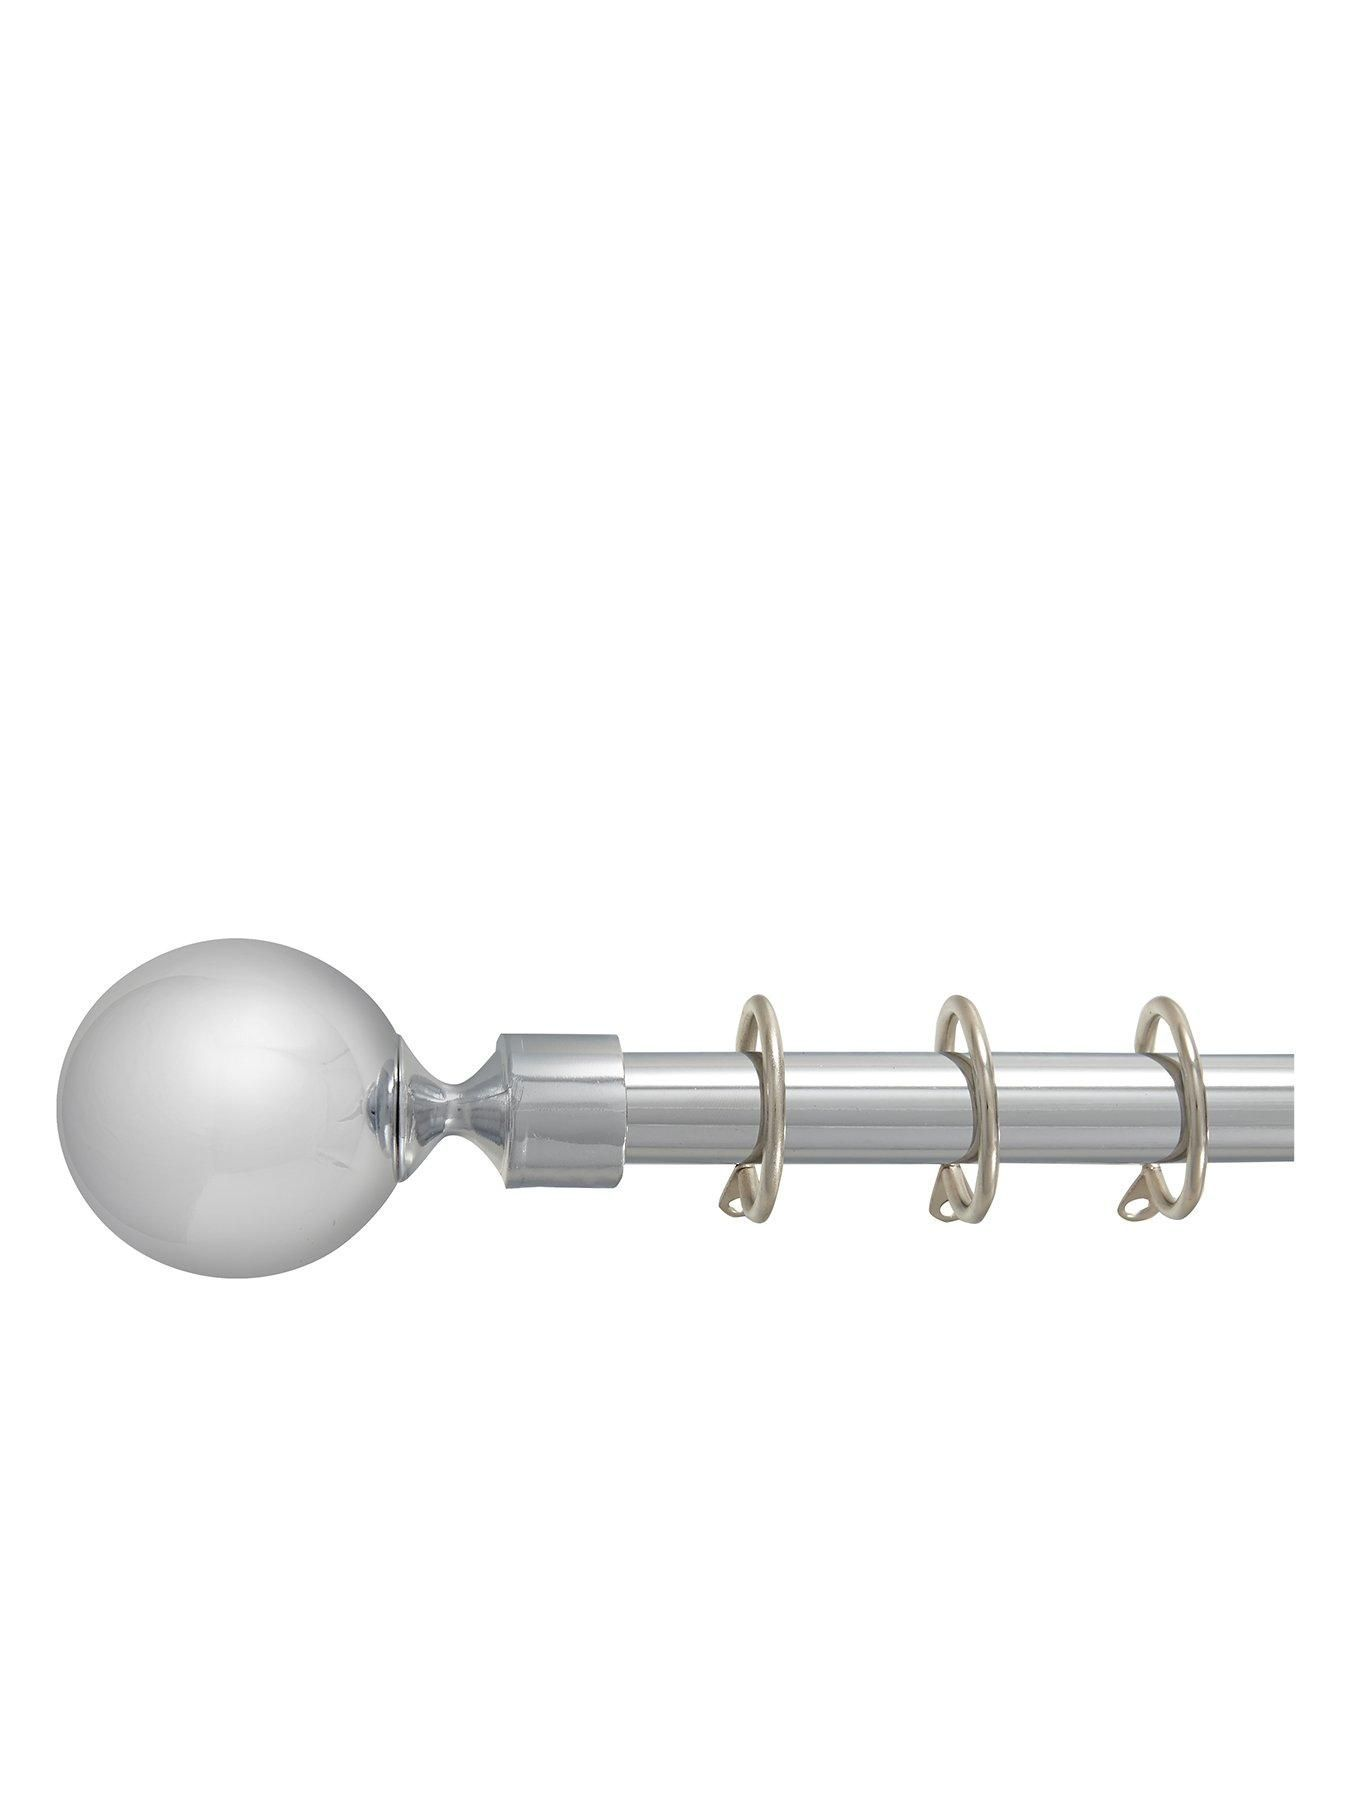 Metal Ball Finial 19mm Curtain Pole In Polished Steel Curtain